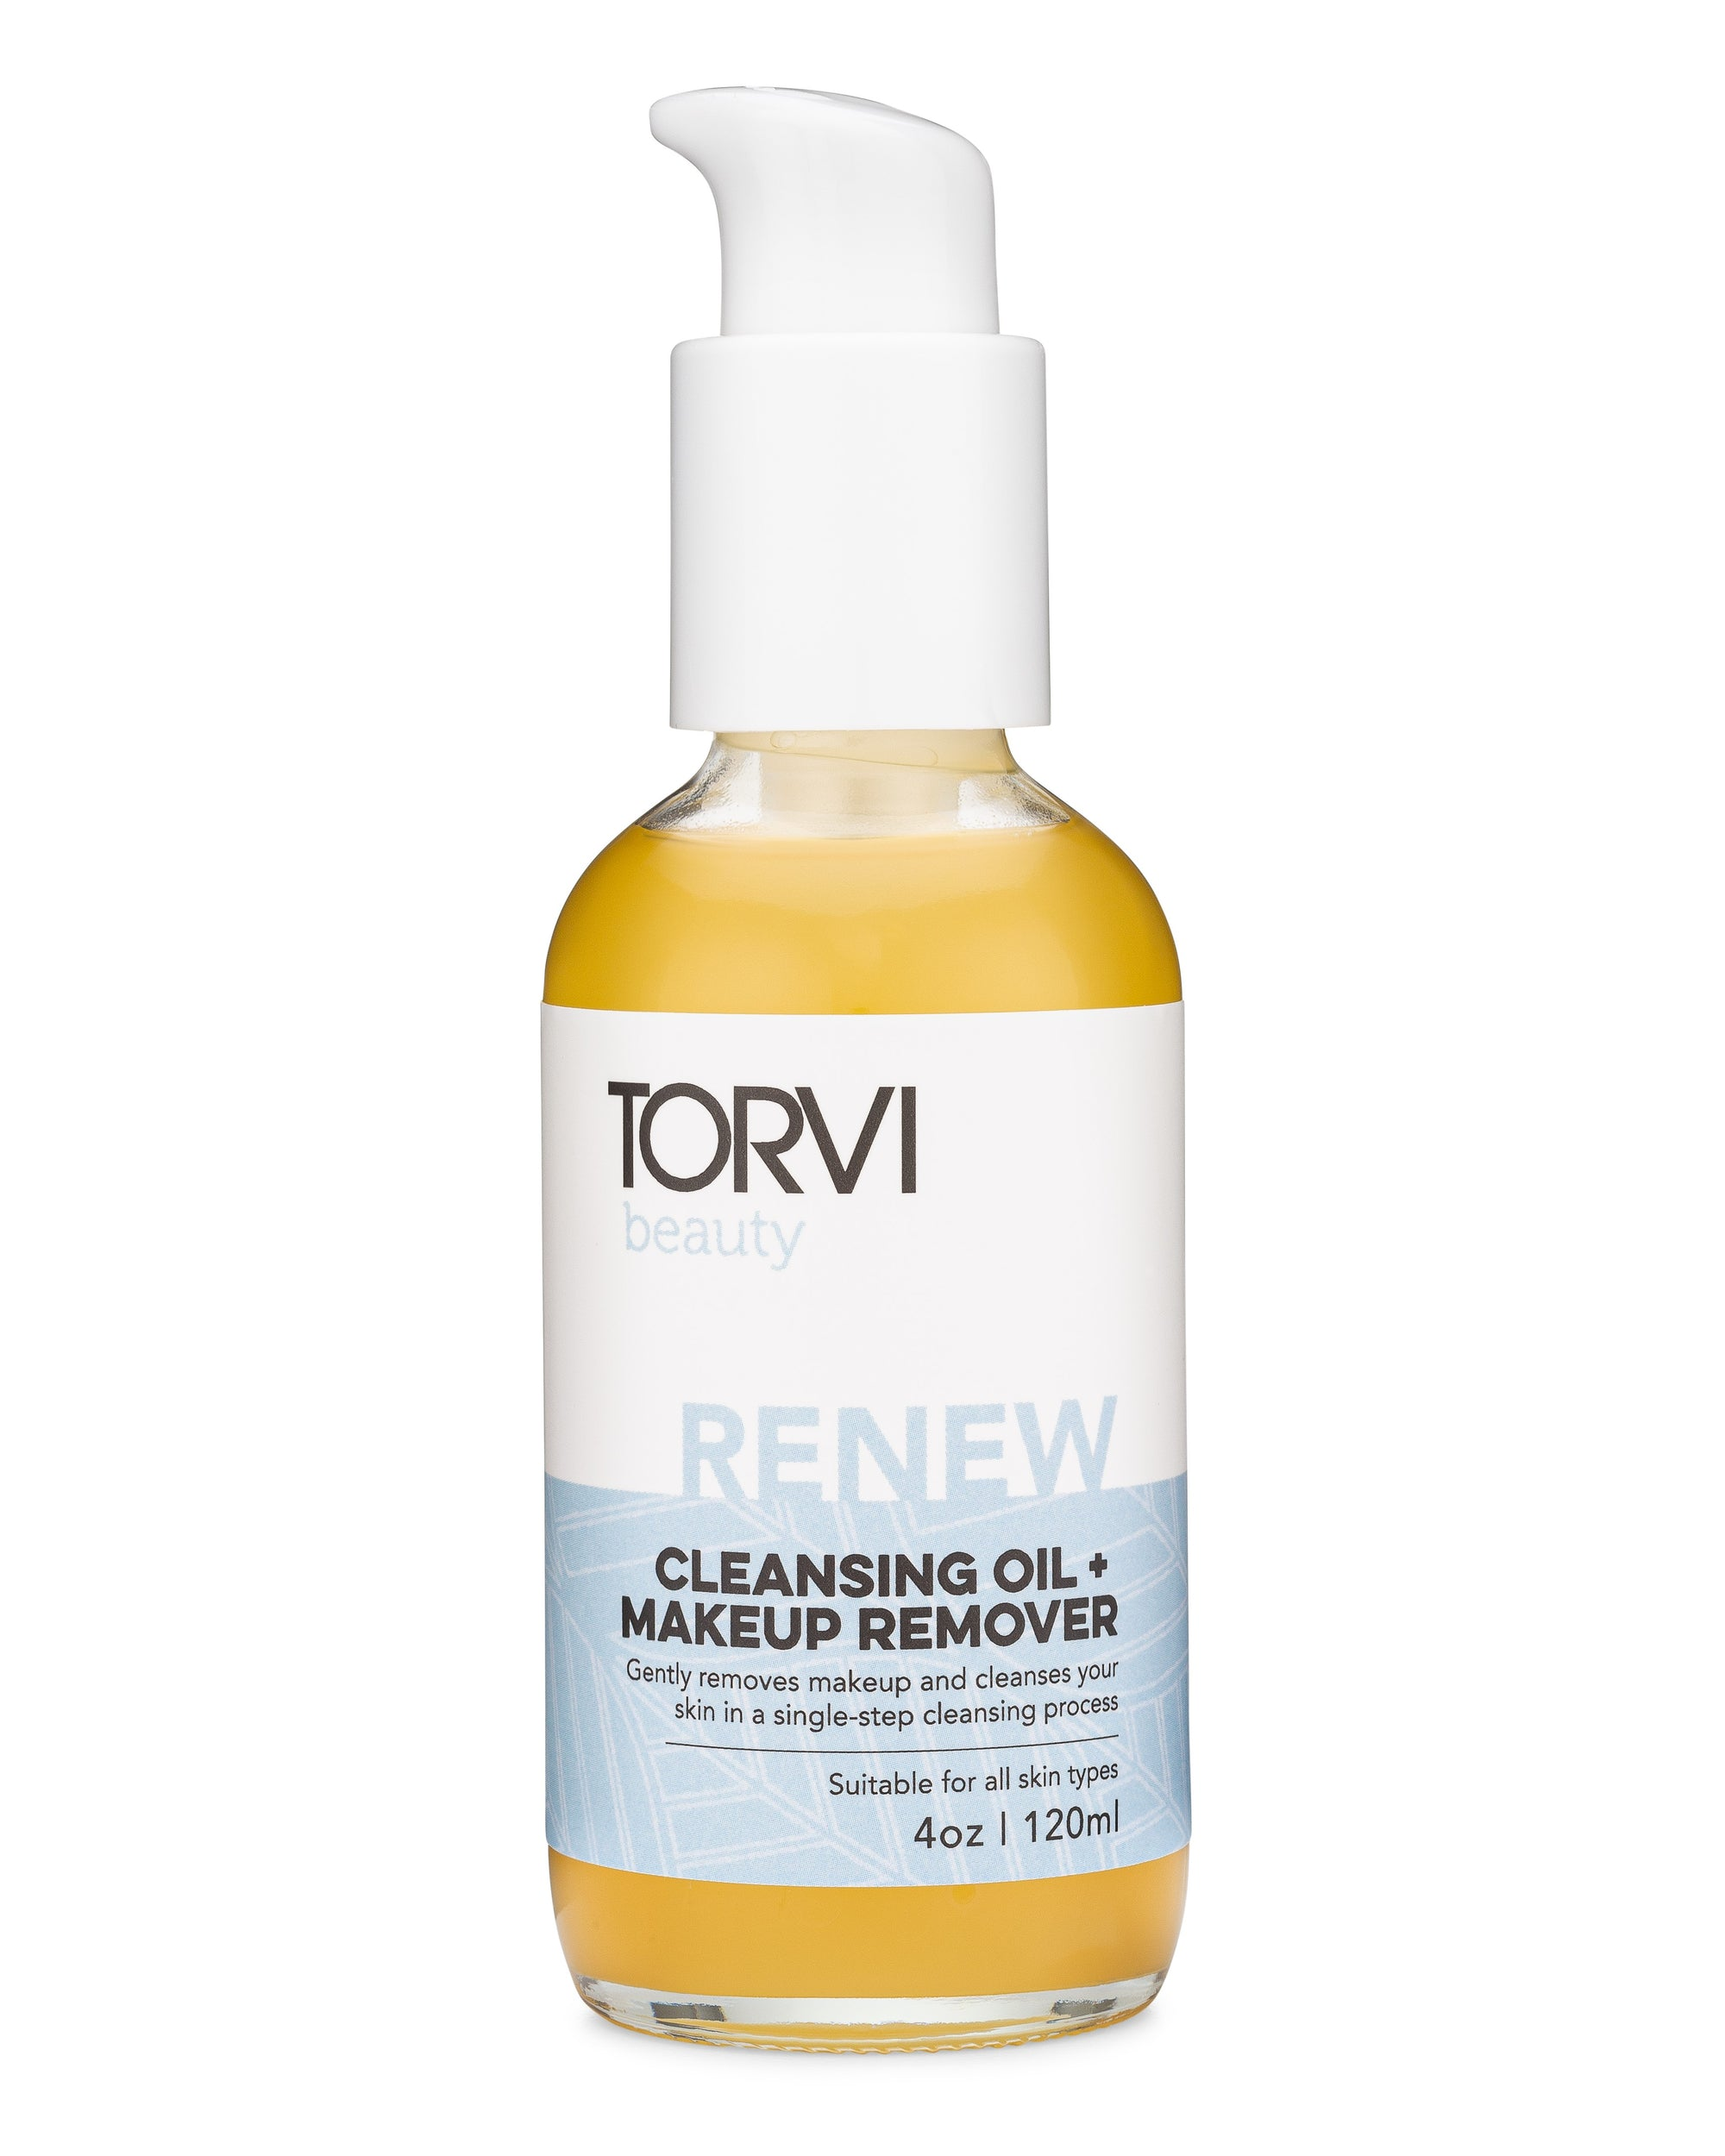 Cleansing Oil + Makeup Remover